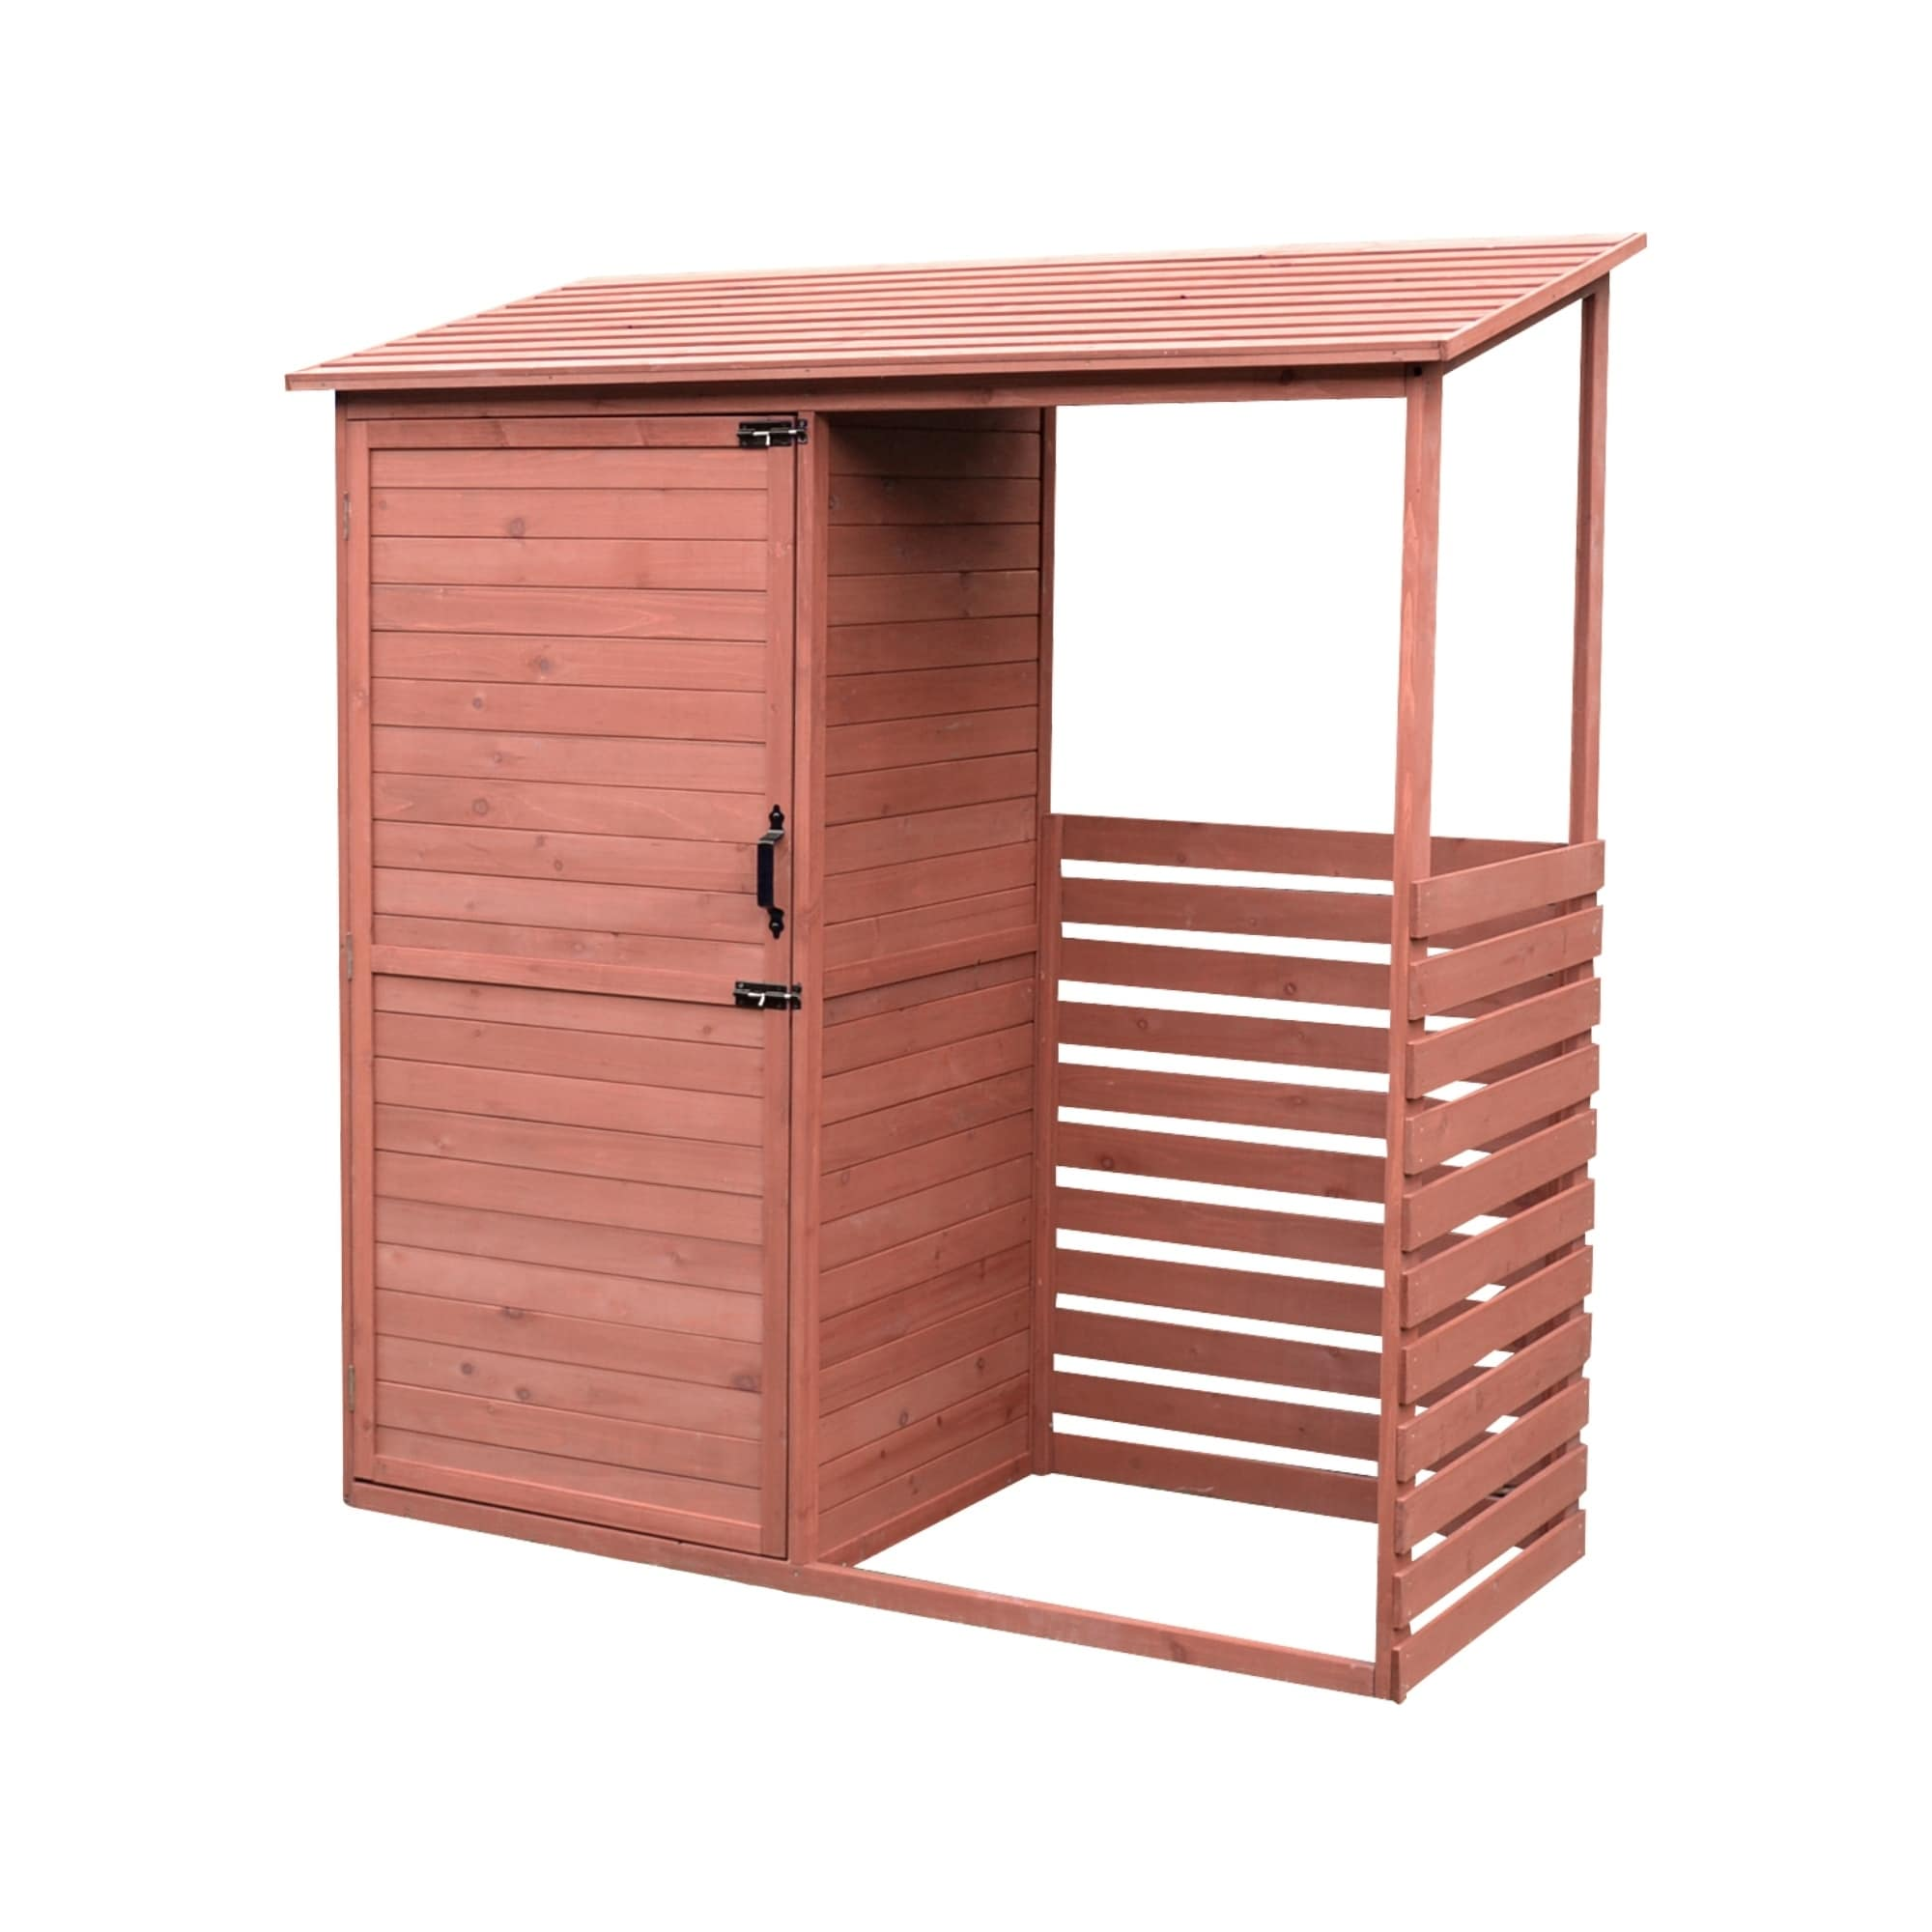 Leisure Season Combination Firewood and Storage Shed